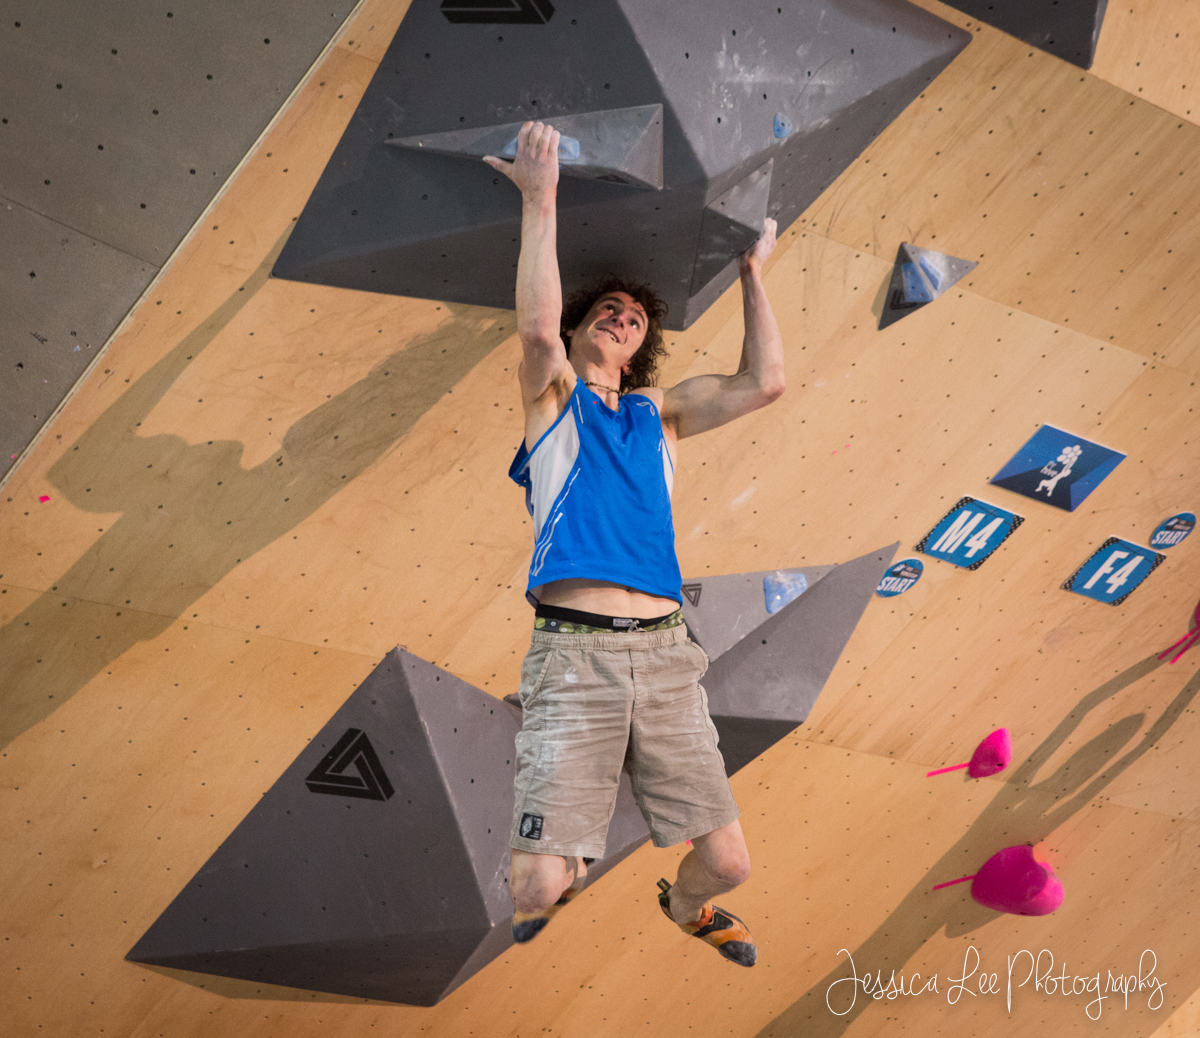 Adam Ondra climbs the final boulder problem to place third. Photo by Jessica Lee.